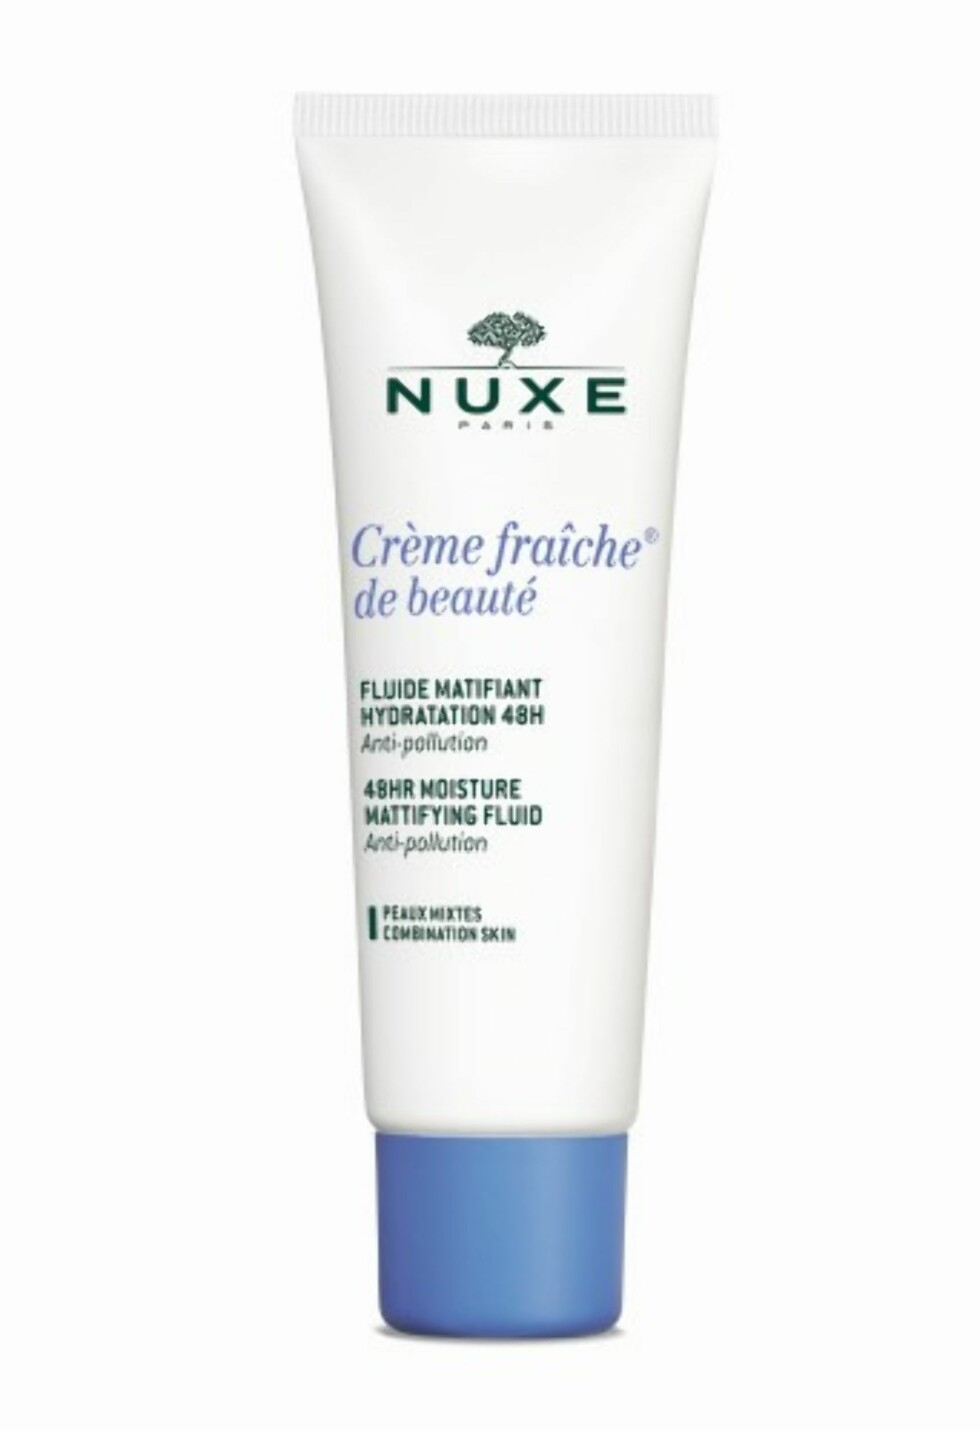 Krem for kombinasjonshud fra | NUXE | https://www.apotek1.no/produkter/nuxe-cr-fraic-48-moistur-fluid-888078p?utm_source=KK.no&utm_medium=Advetorial&utm_campaign=Nuxe%20Creme%20Fraiche&utm_term=888078